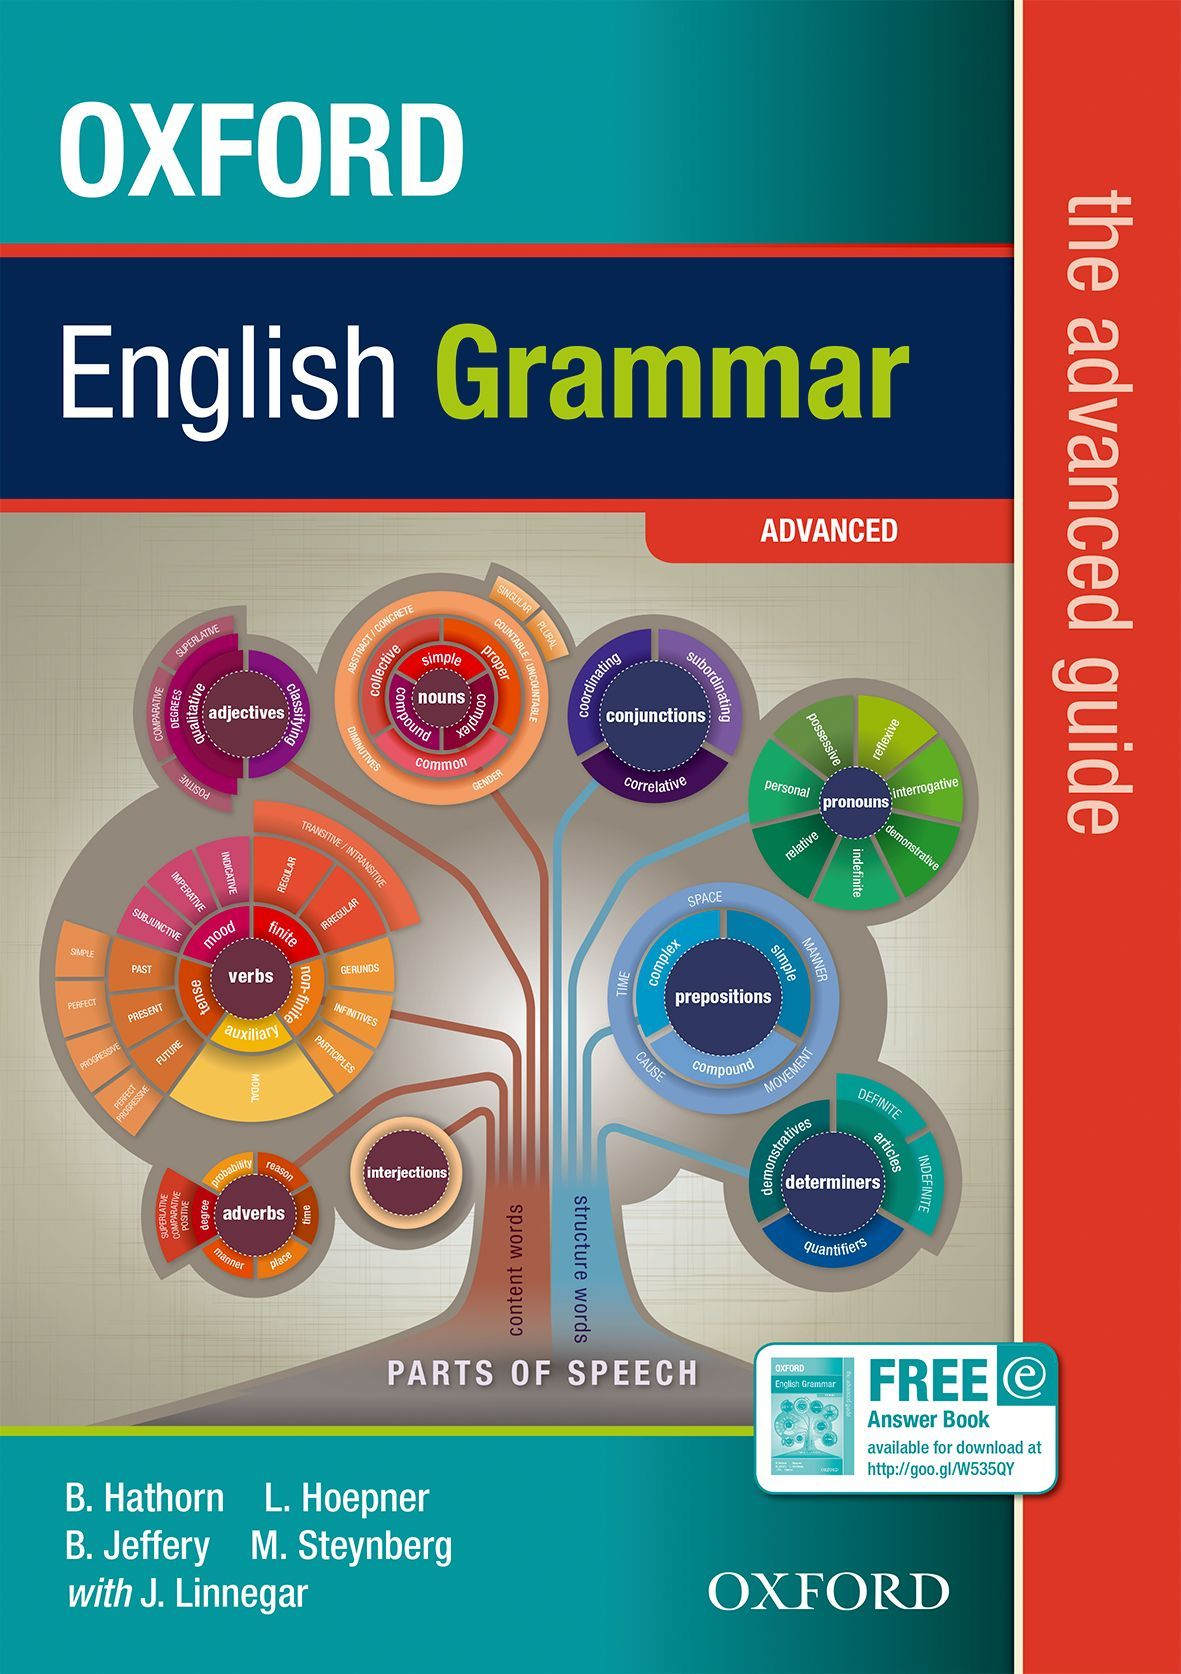 Oxford University Press Oxford English Grammar The